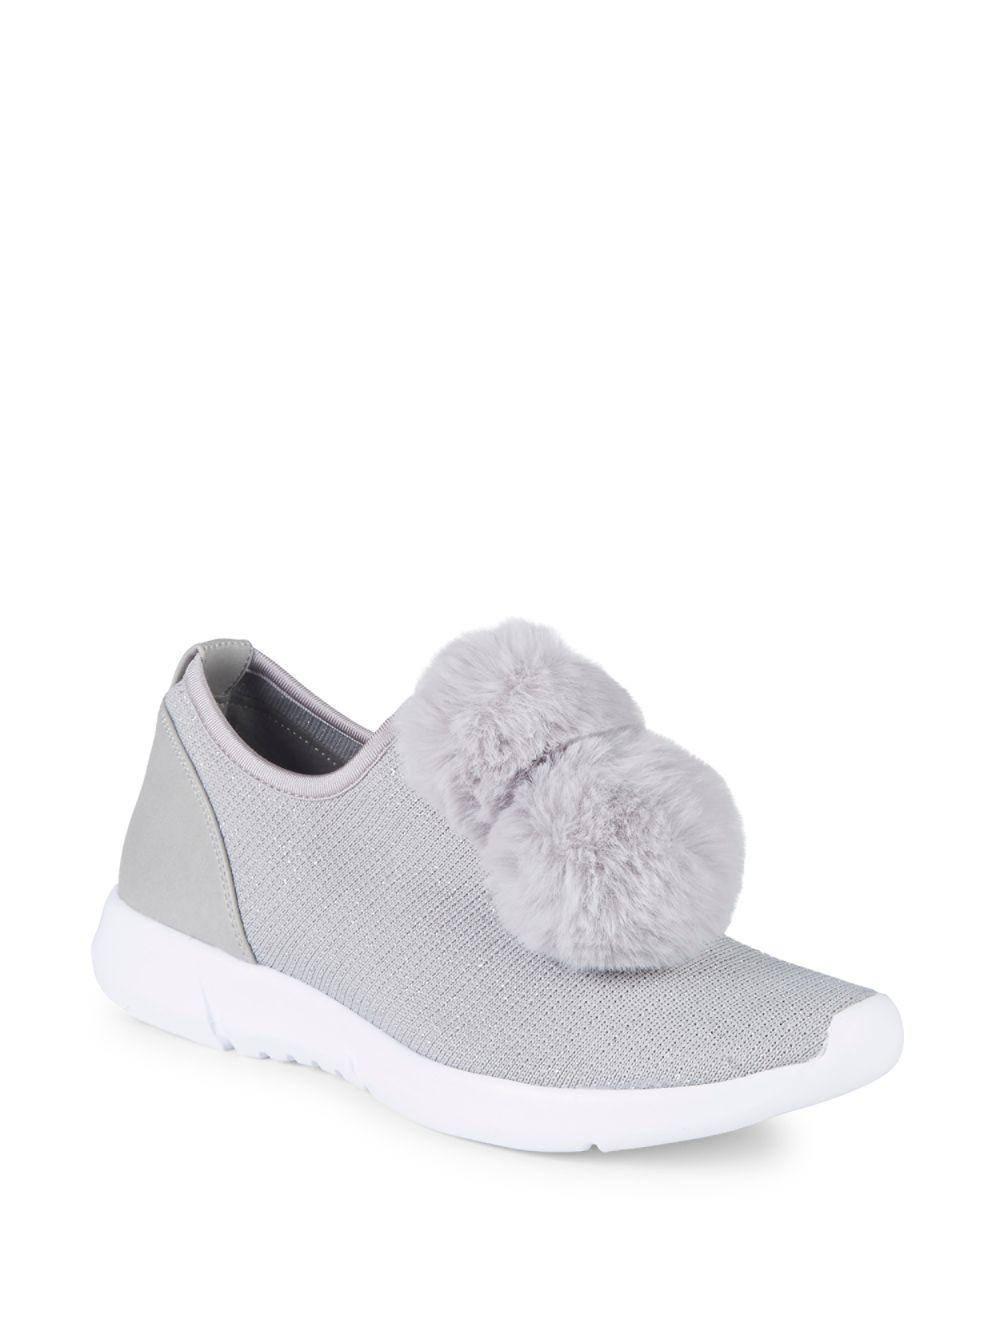 c08a78979 Lyst - Circus by Sam Edelman Lisette Faux Fur Pom-pom Sneakers in Gray